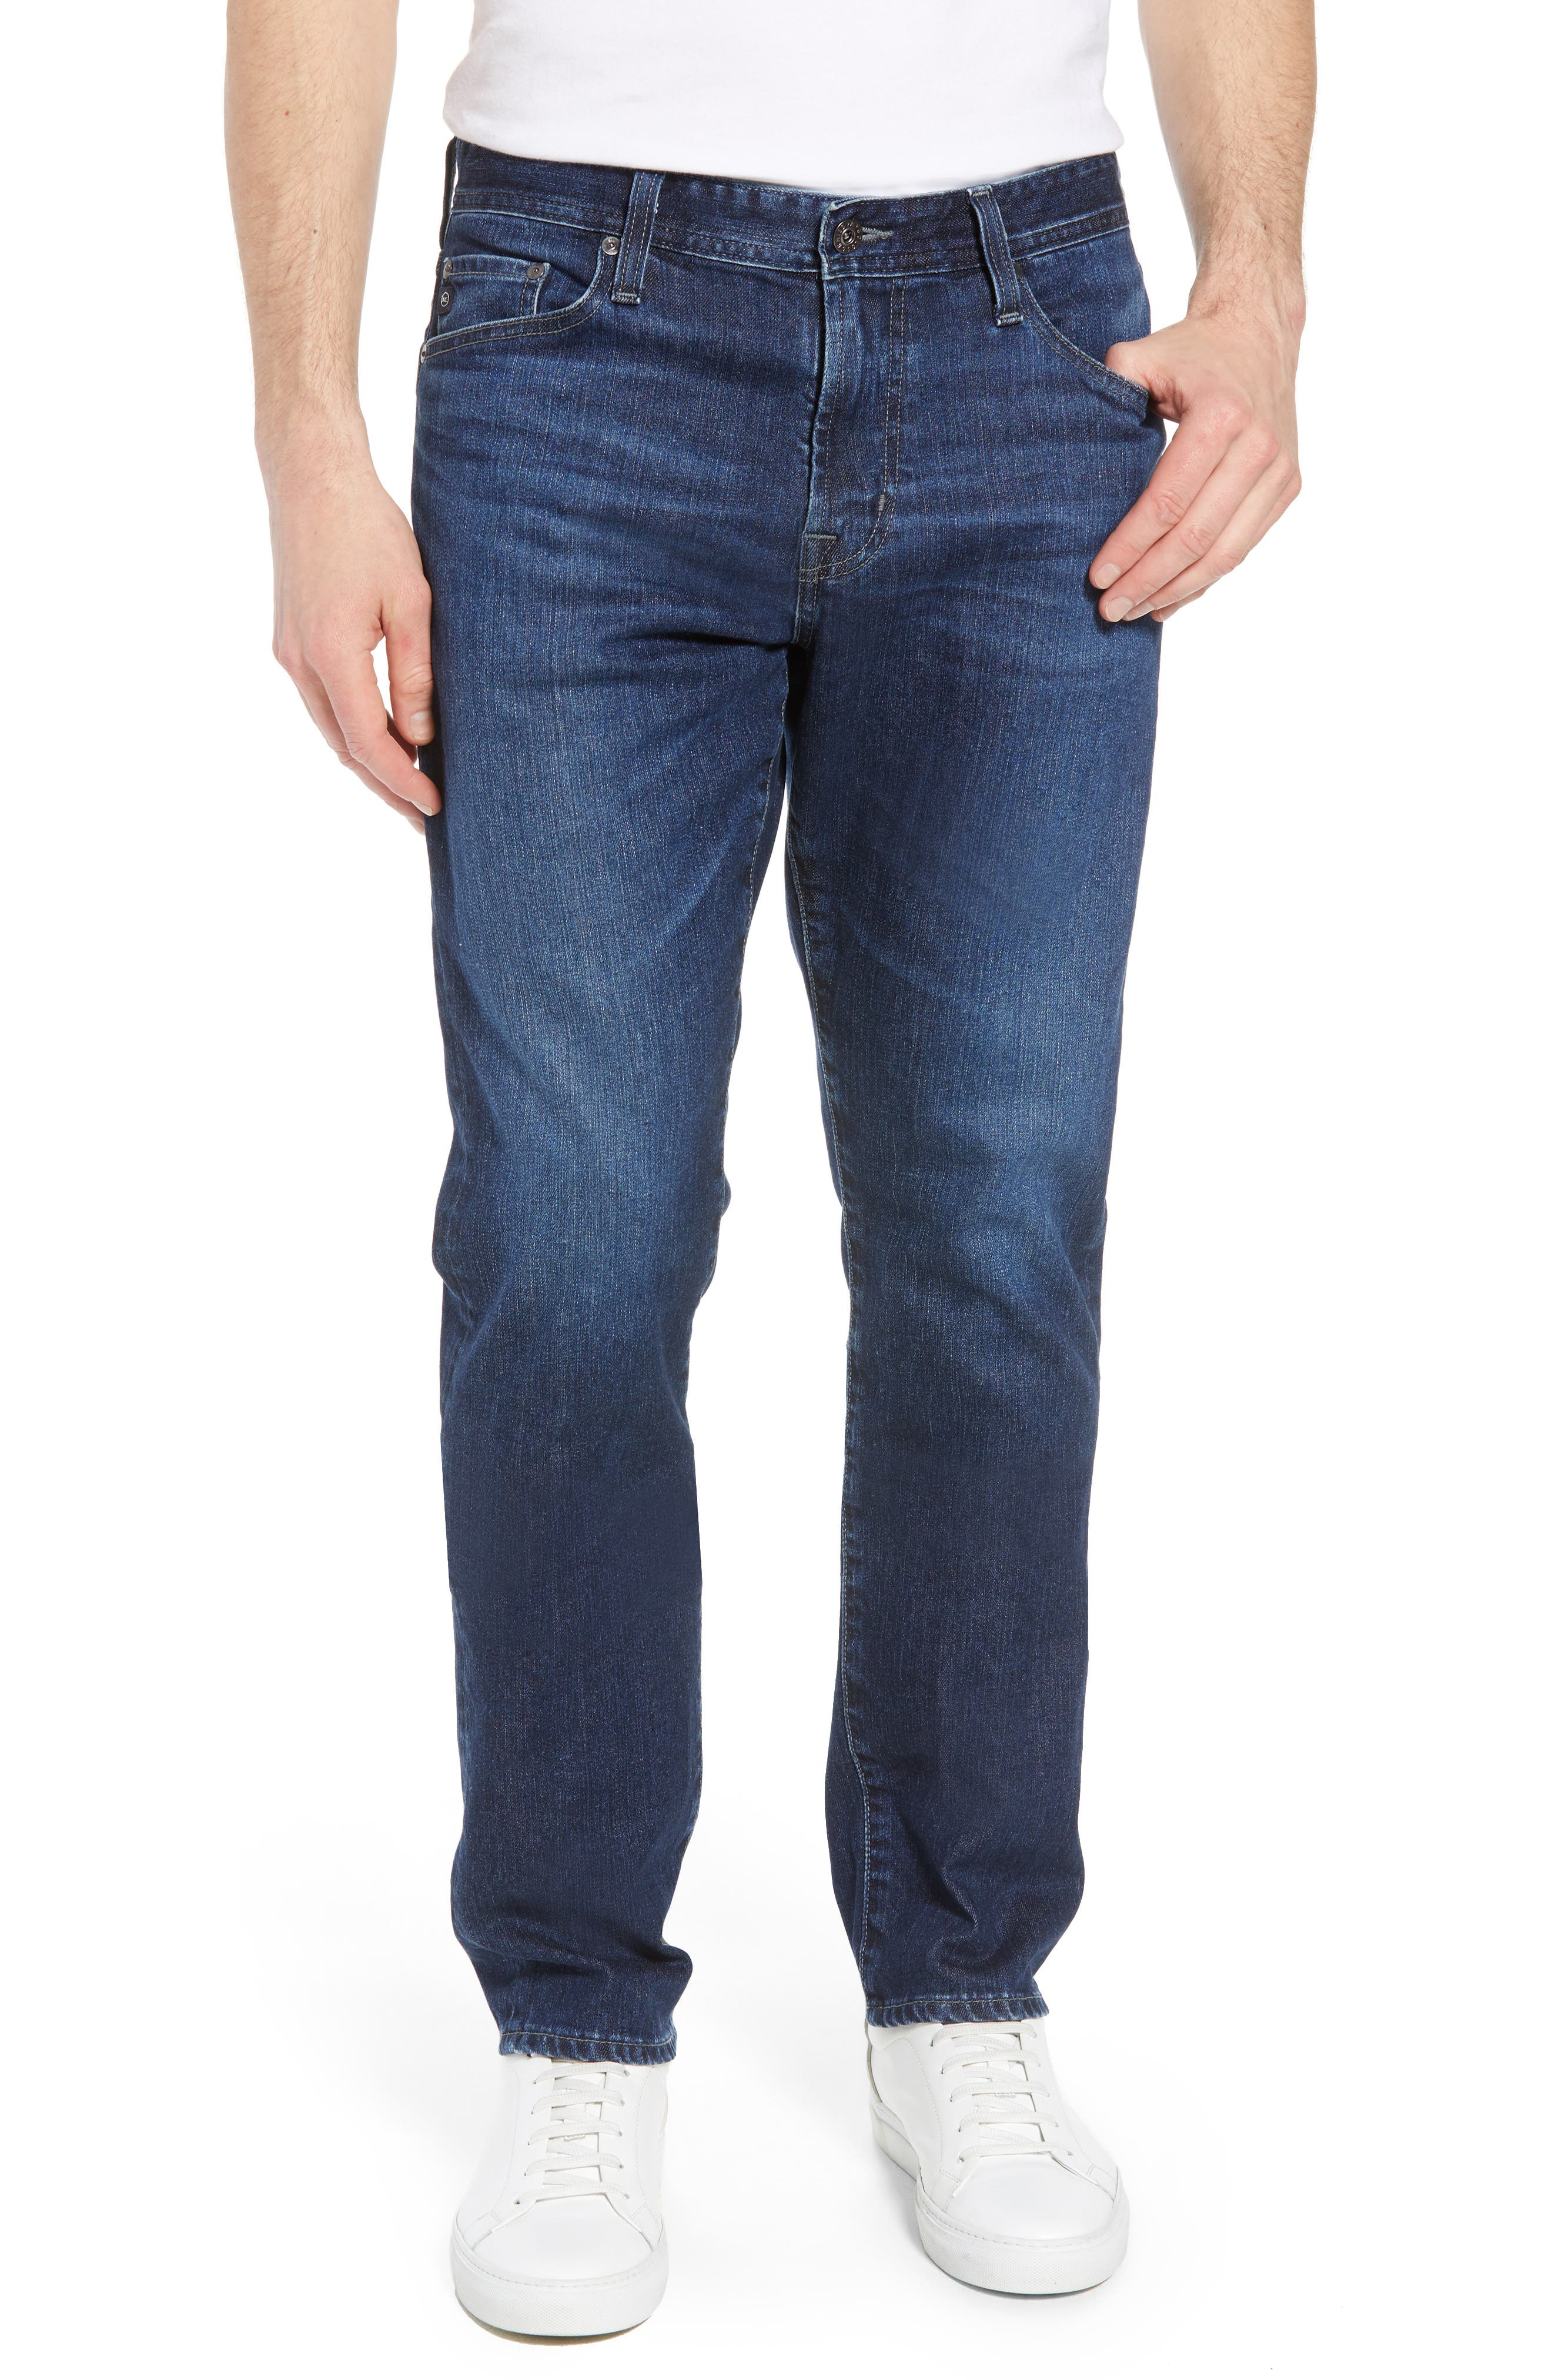 Ives Straight Leg Jeans,                             Main thumbnail 1, color,                             Lakeview